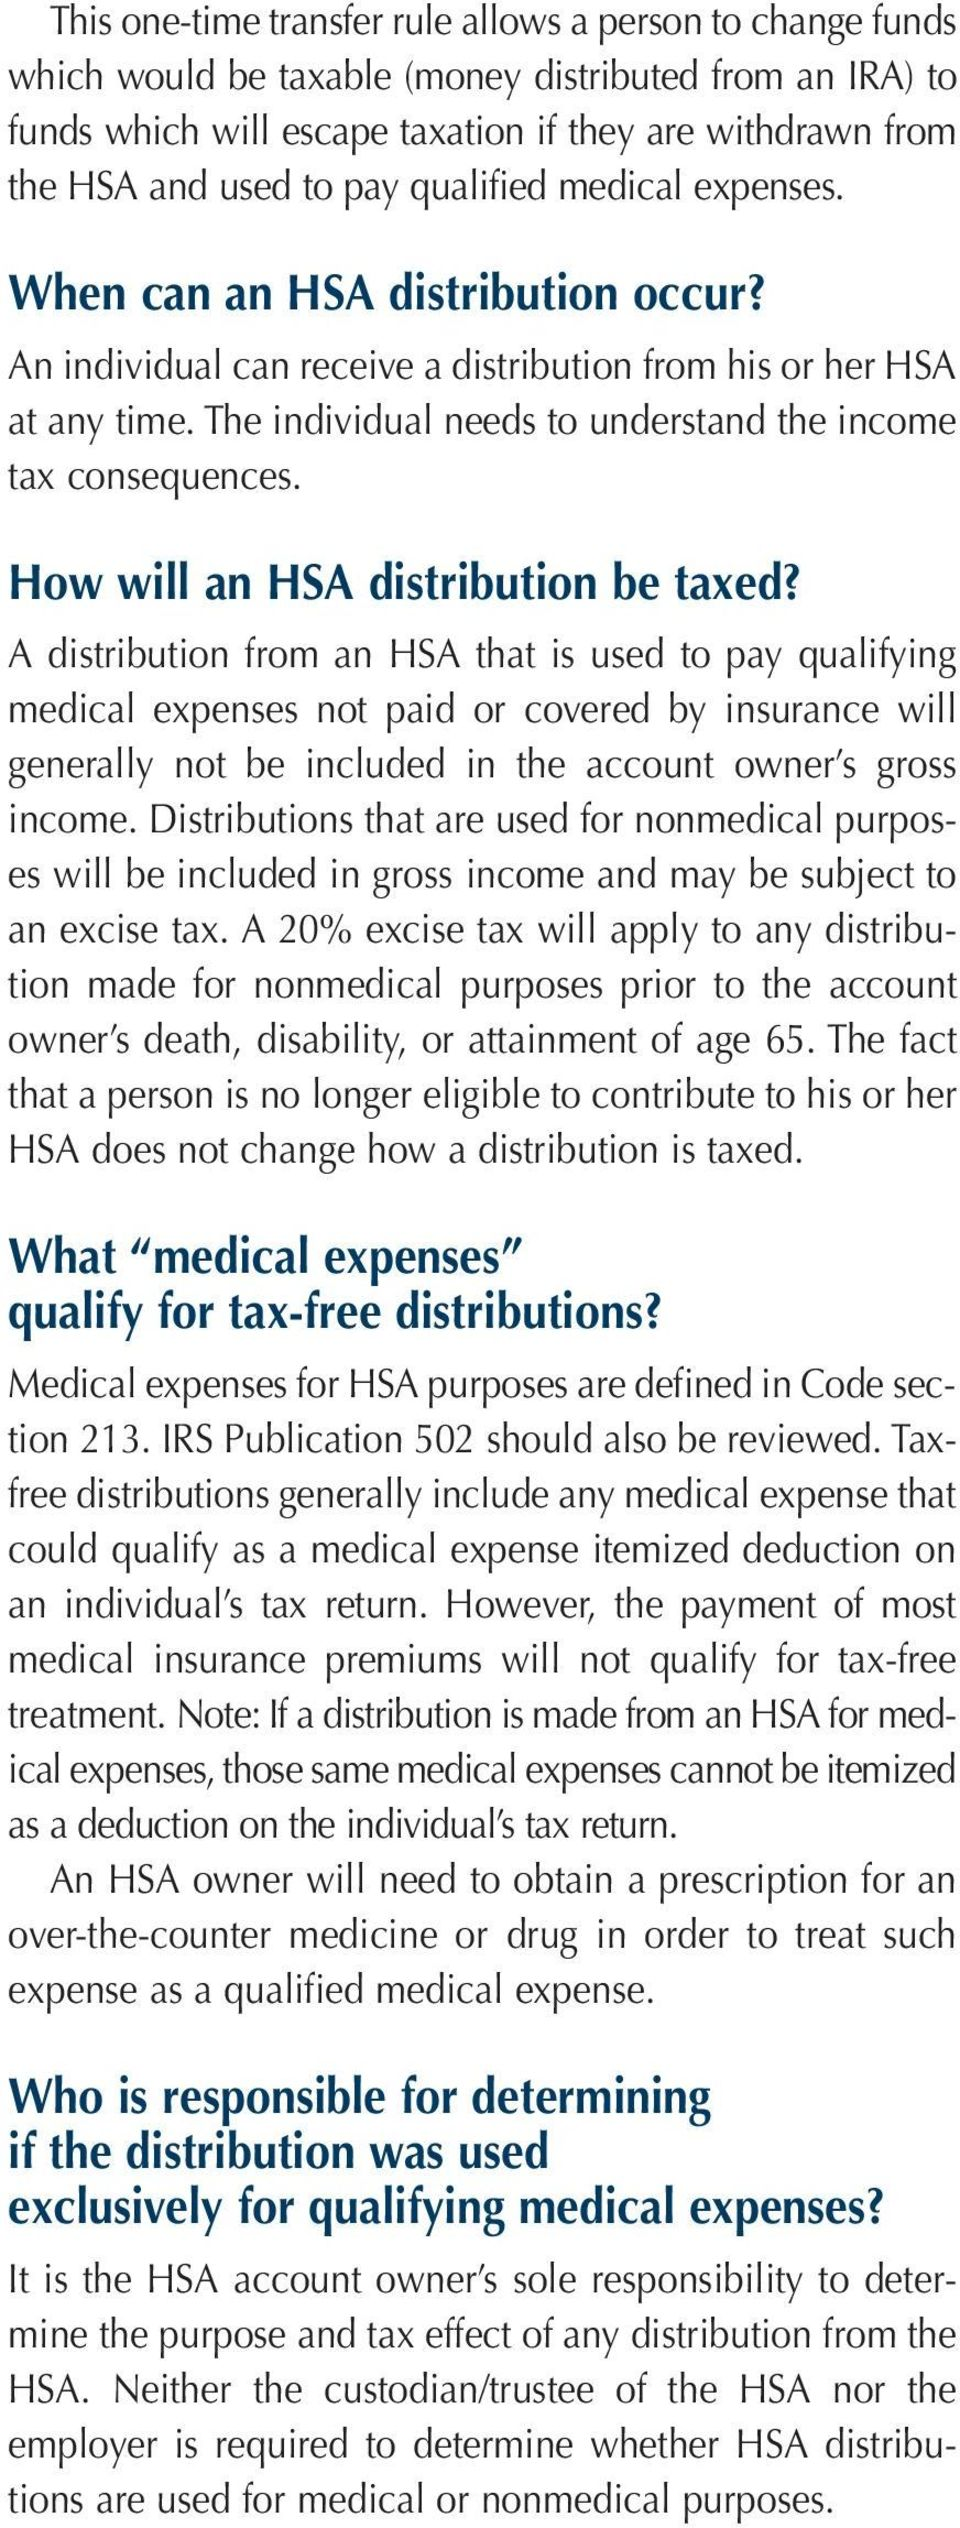 The individual needs to understand the income tax consequences. How will an HSA distribution be taxed?